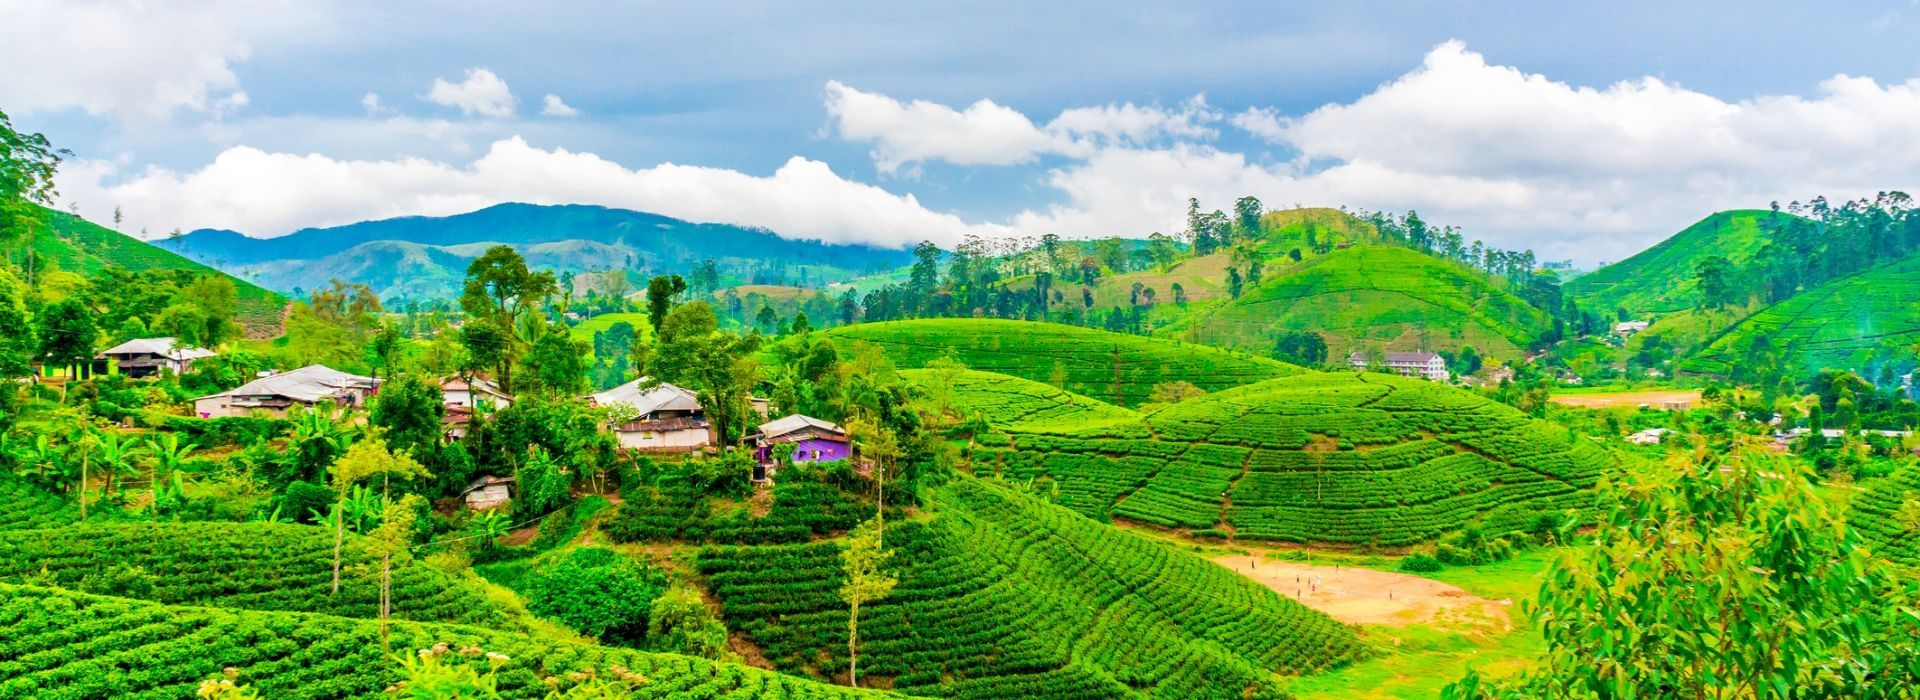 Farm and plantation visits Tours in Colombo